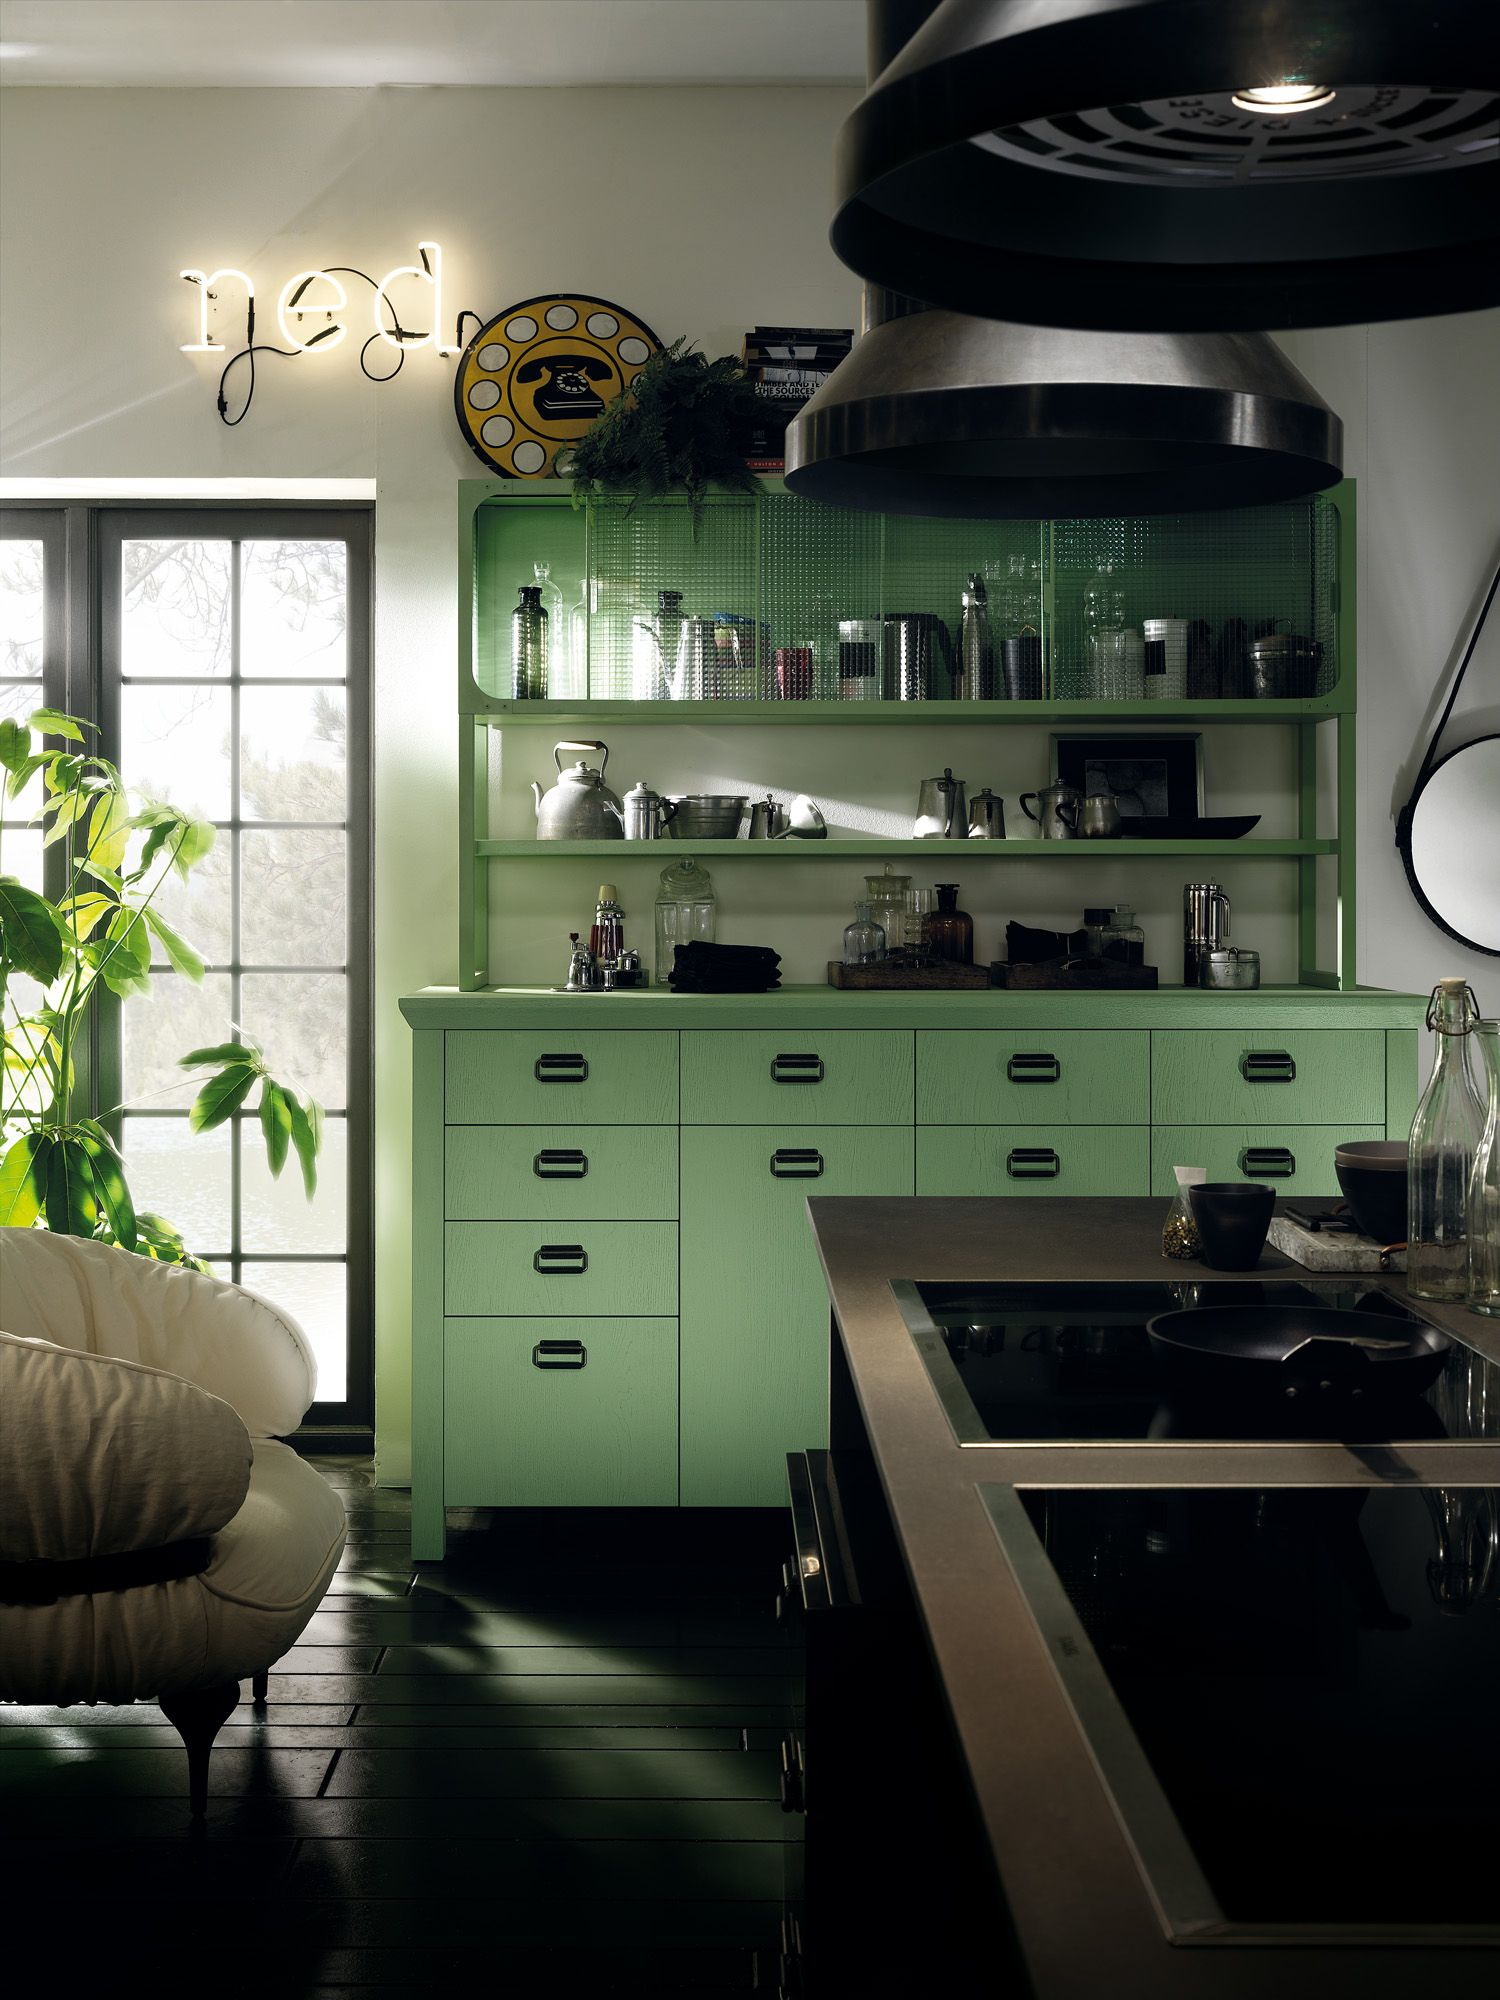 scavolini mood kitchen light scavolini contemporary kitchen. Diesel Social Kitchen Design By Diesel. For Scavolini, The Designers Of Have Created A Vast Assortment Compositional Features Scavolini Mood Light Contemporary O